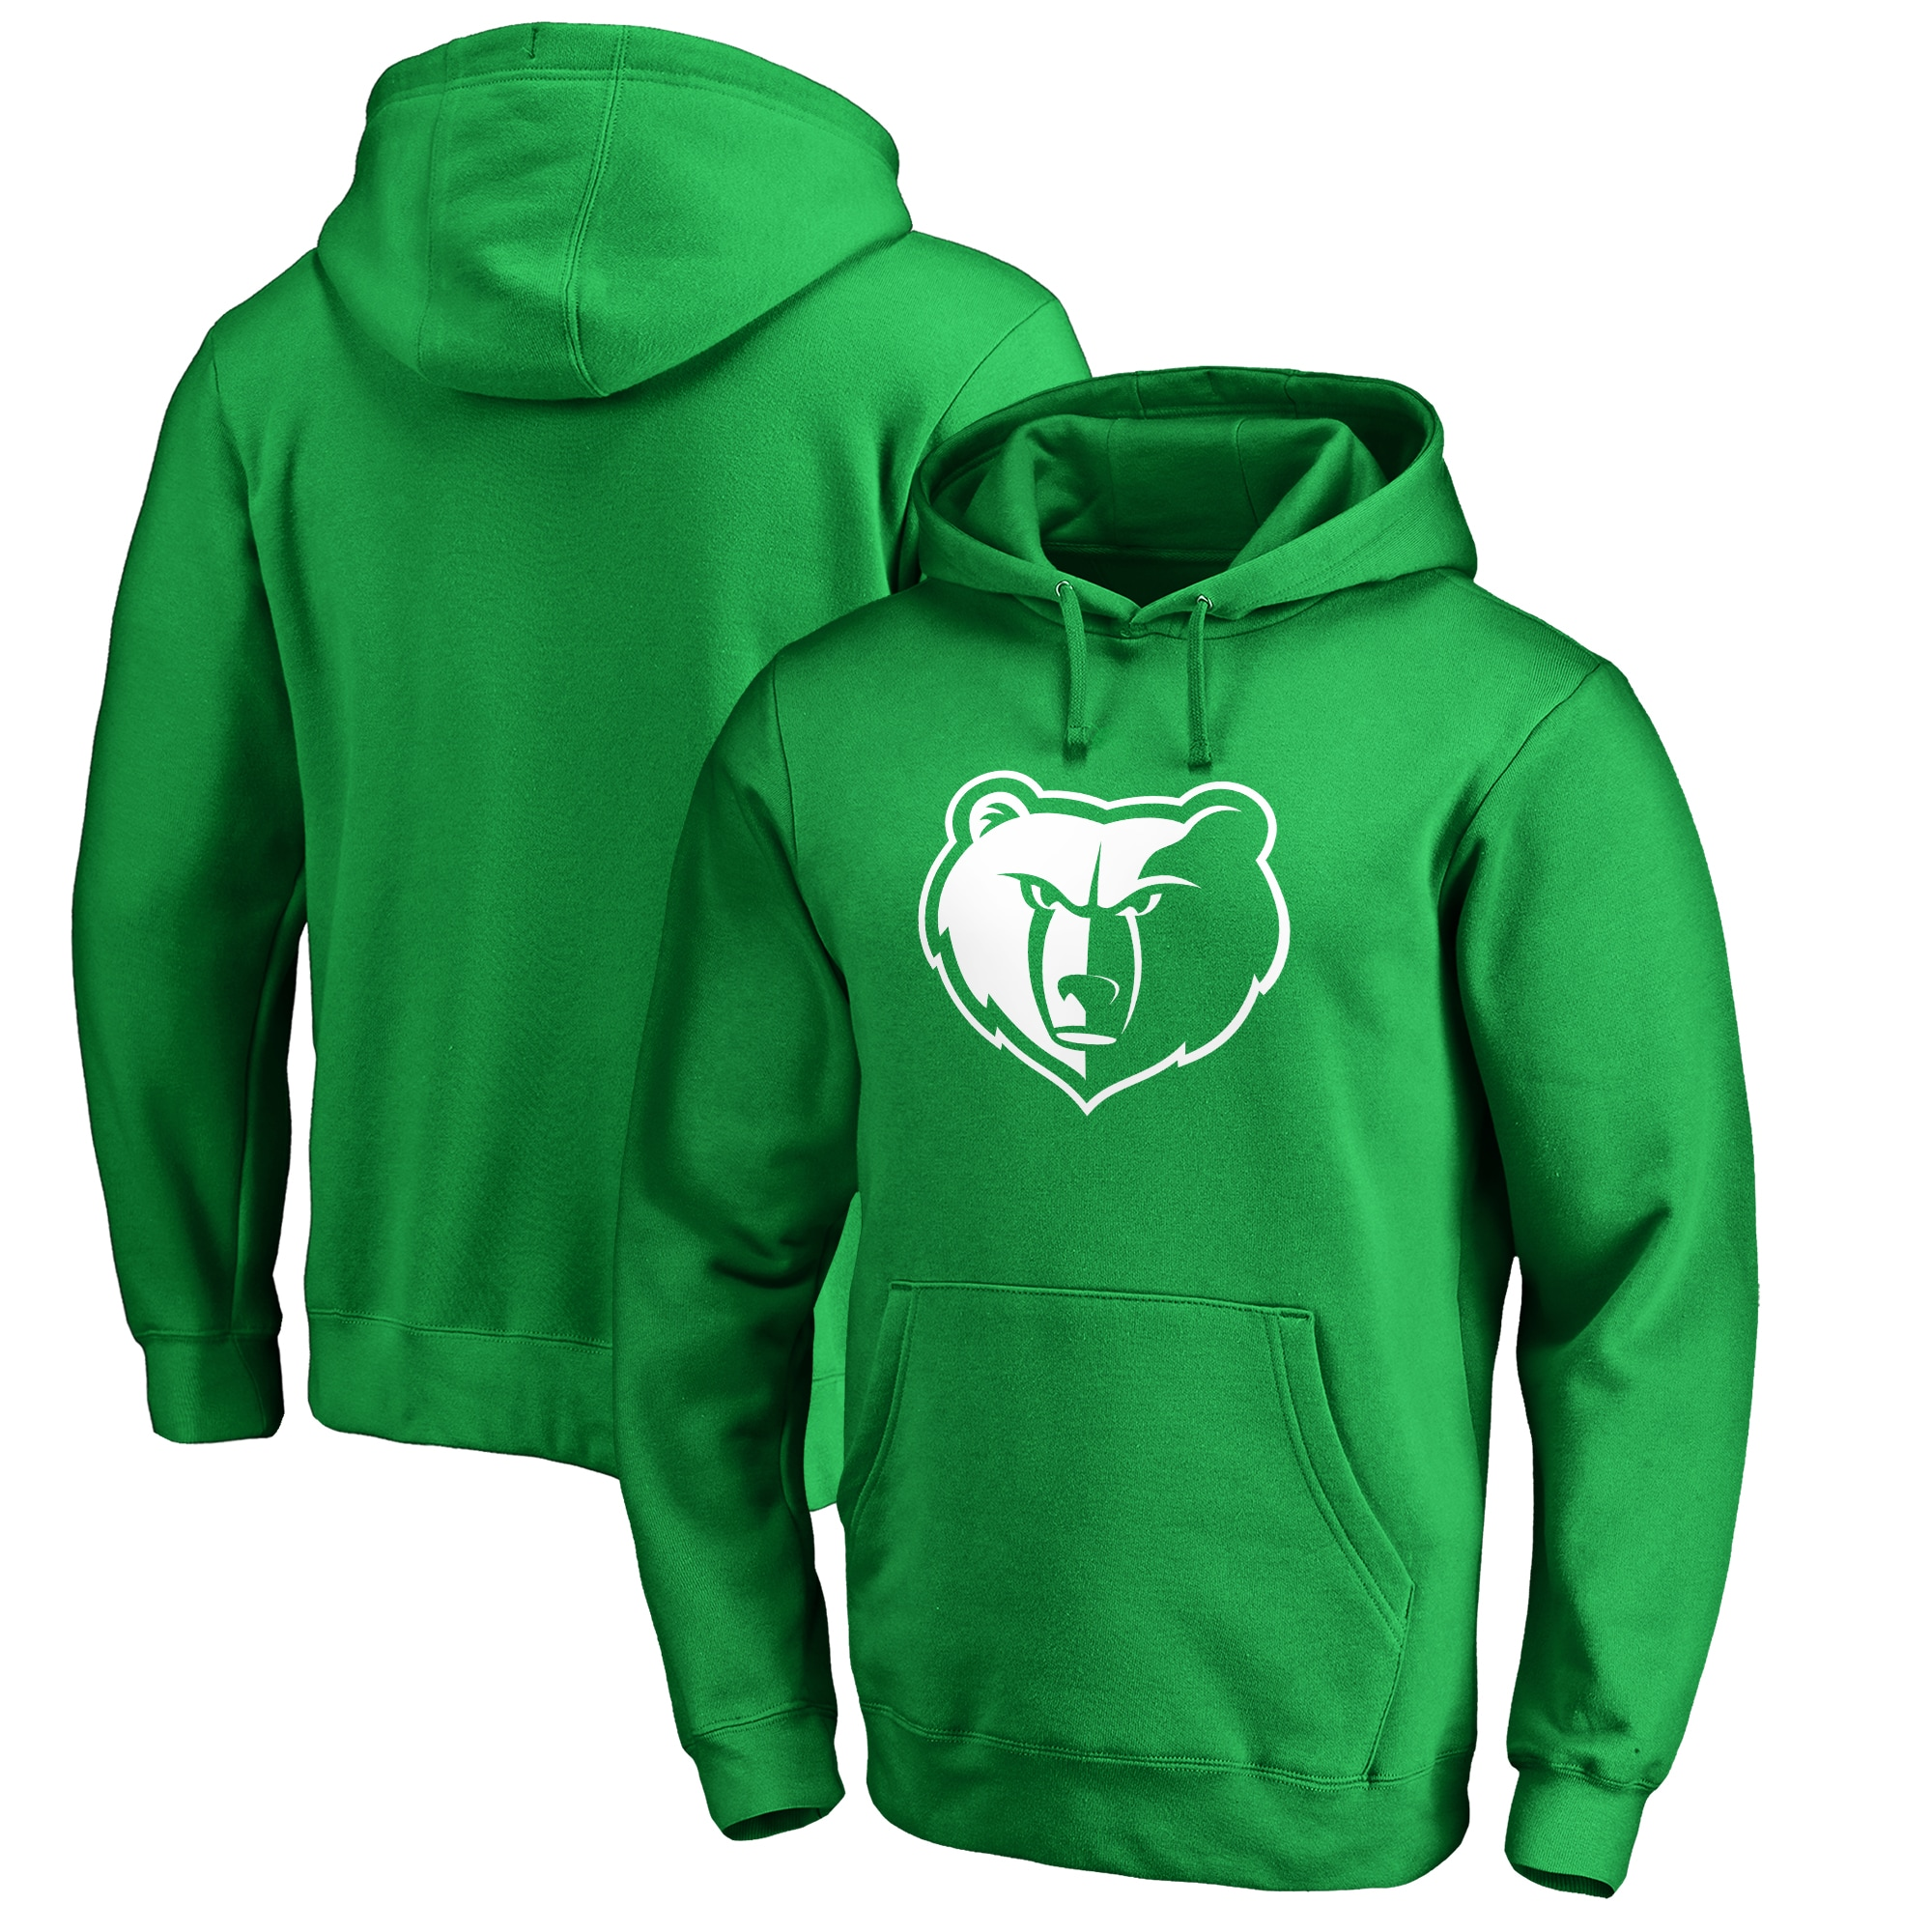 Memphis Grizzlies Fanatics Branded St. Patrick's Day White Logo Pullover Hoodie - Green